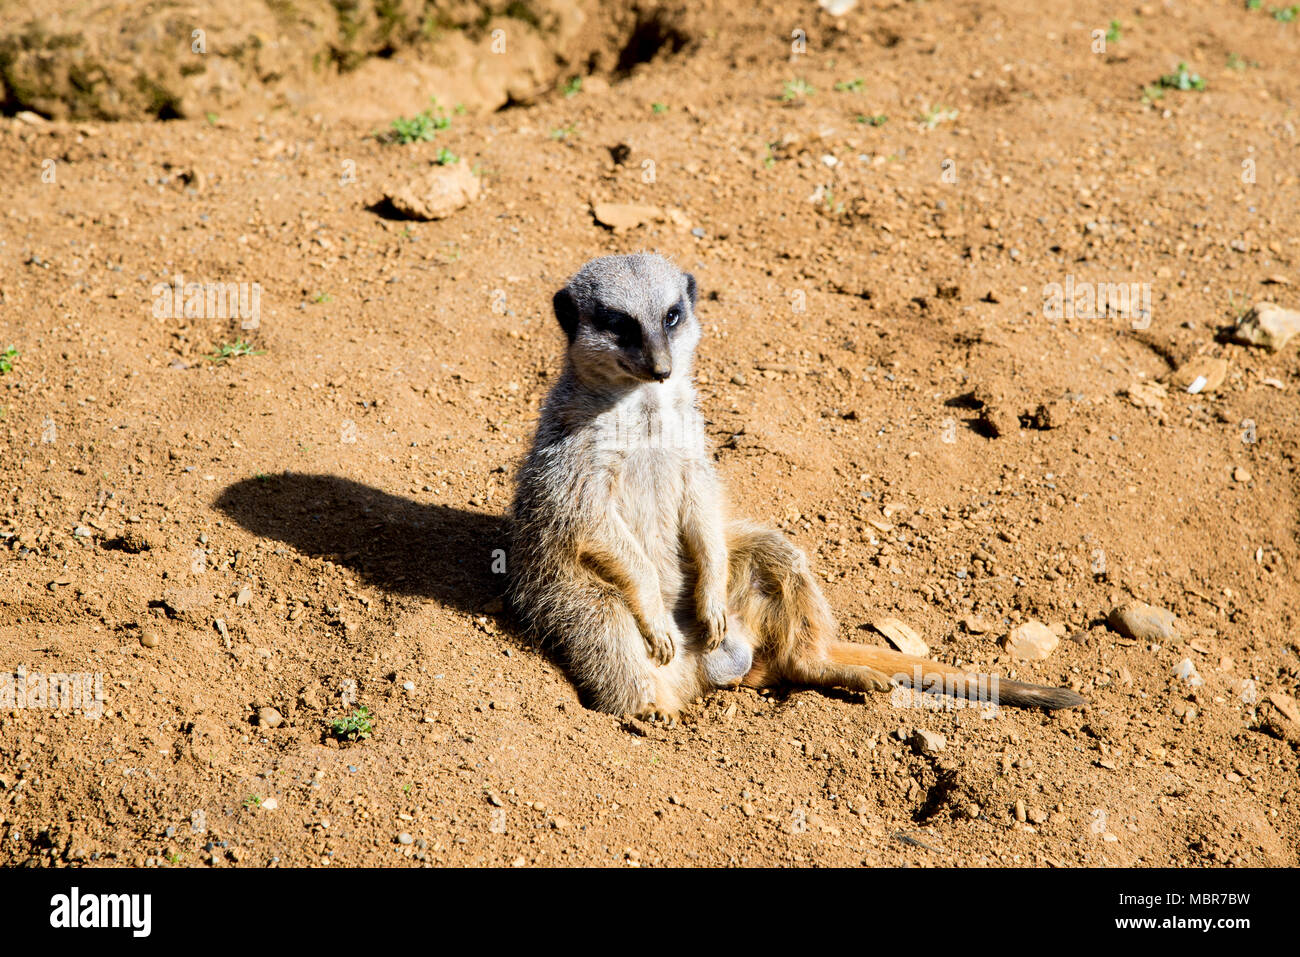 Meerkat sits and looks around - funny animal - Beale Park United Kingdom - 25.03.2017 - Stock Image